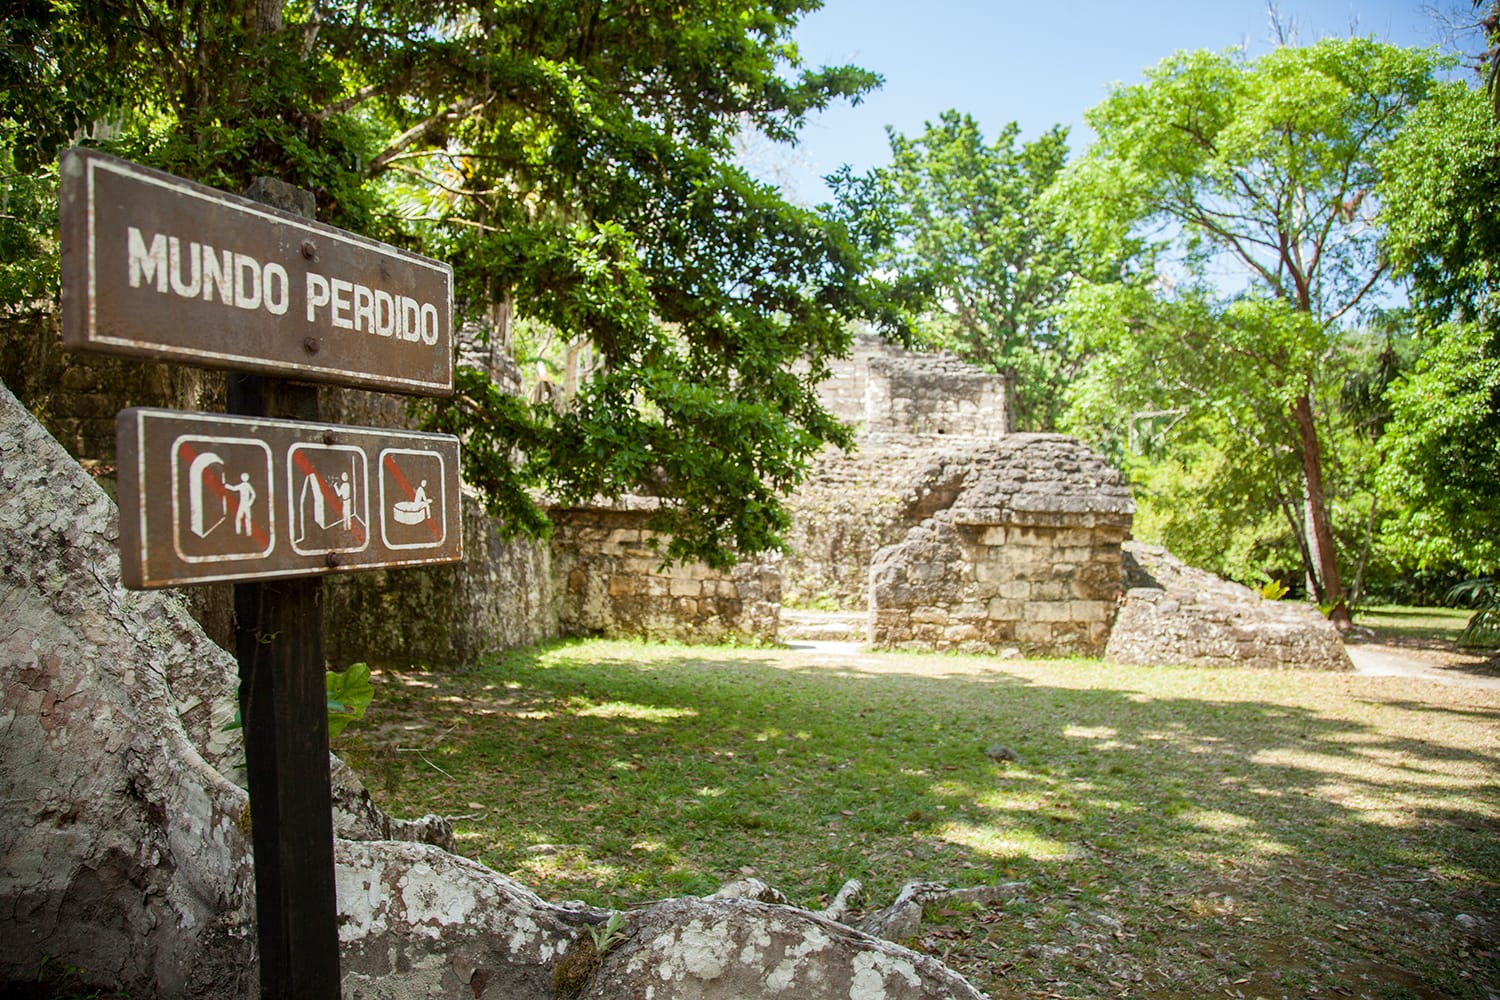 Sign at the entrance to the complex of astronomic conmmemoration known as Plaza of the Great Pyramid or Lost World (Mundo Perdido) in Tikal, Guatemala.